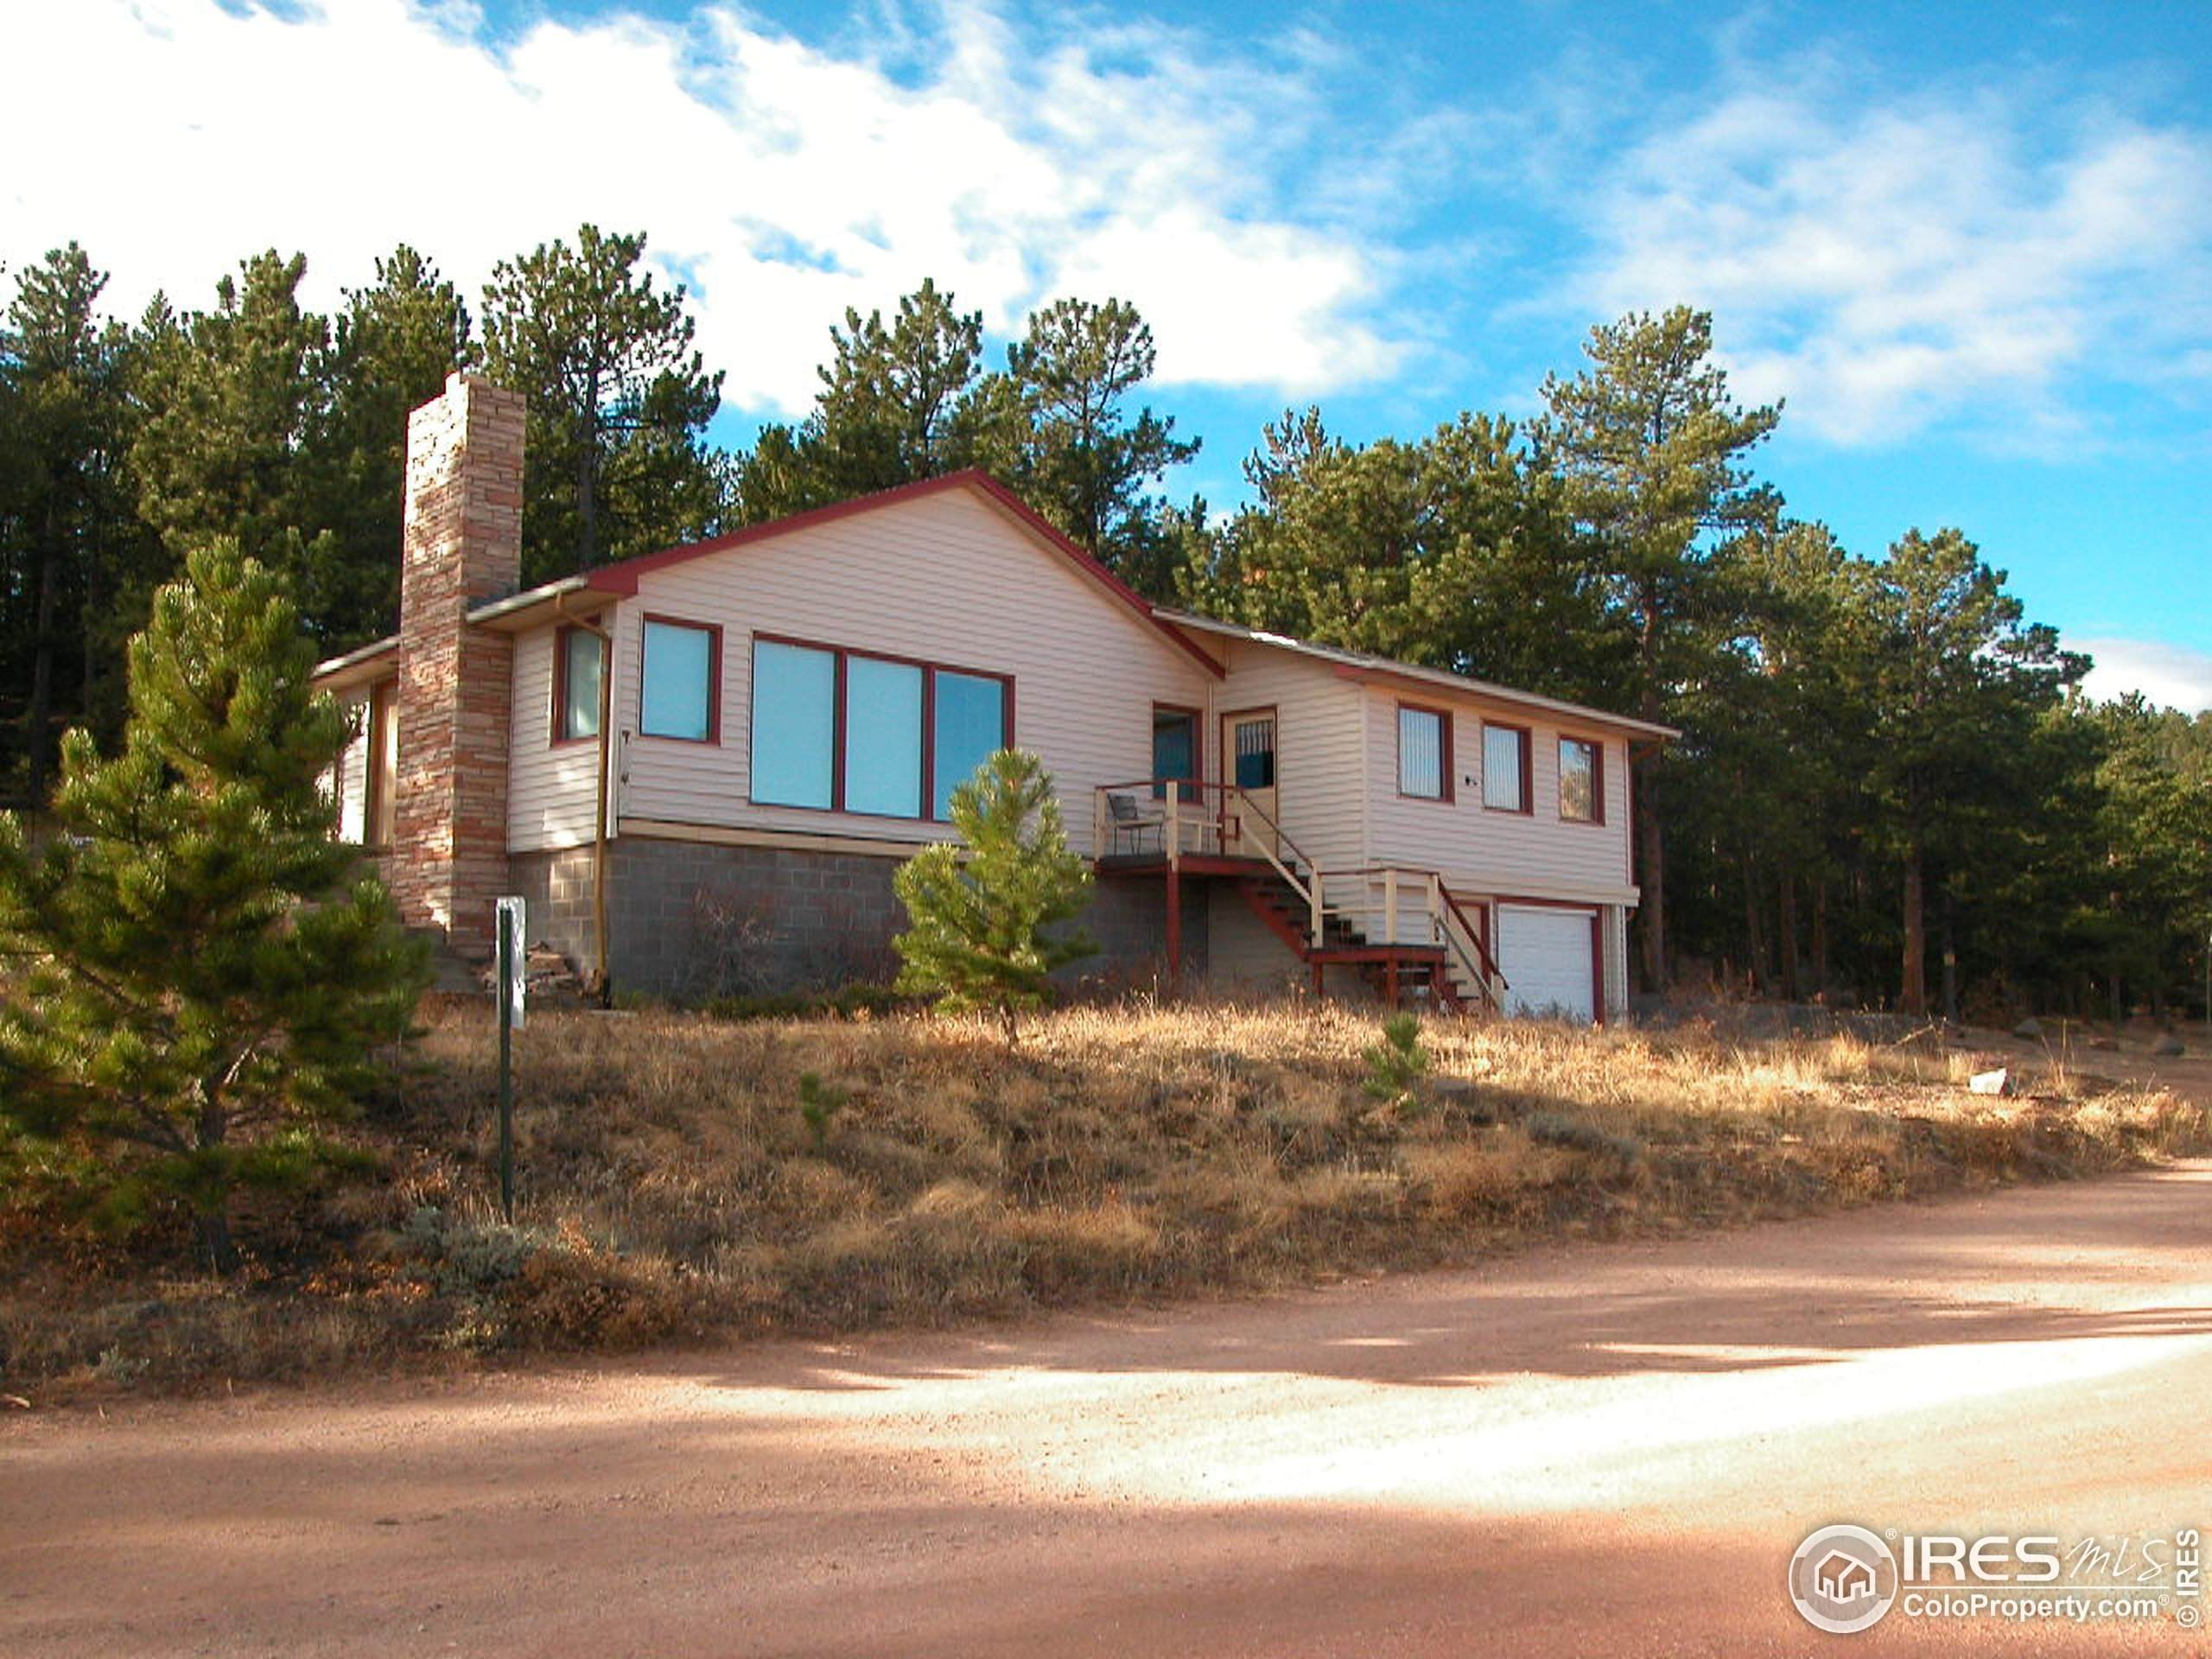 2231 Wakefield Dr, Fort Collins, CO 80526 (MLS #941016) :: RE/MAX Alliance